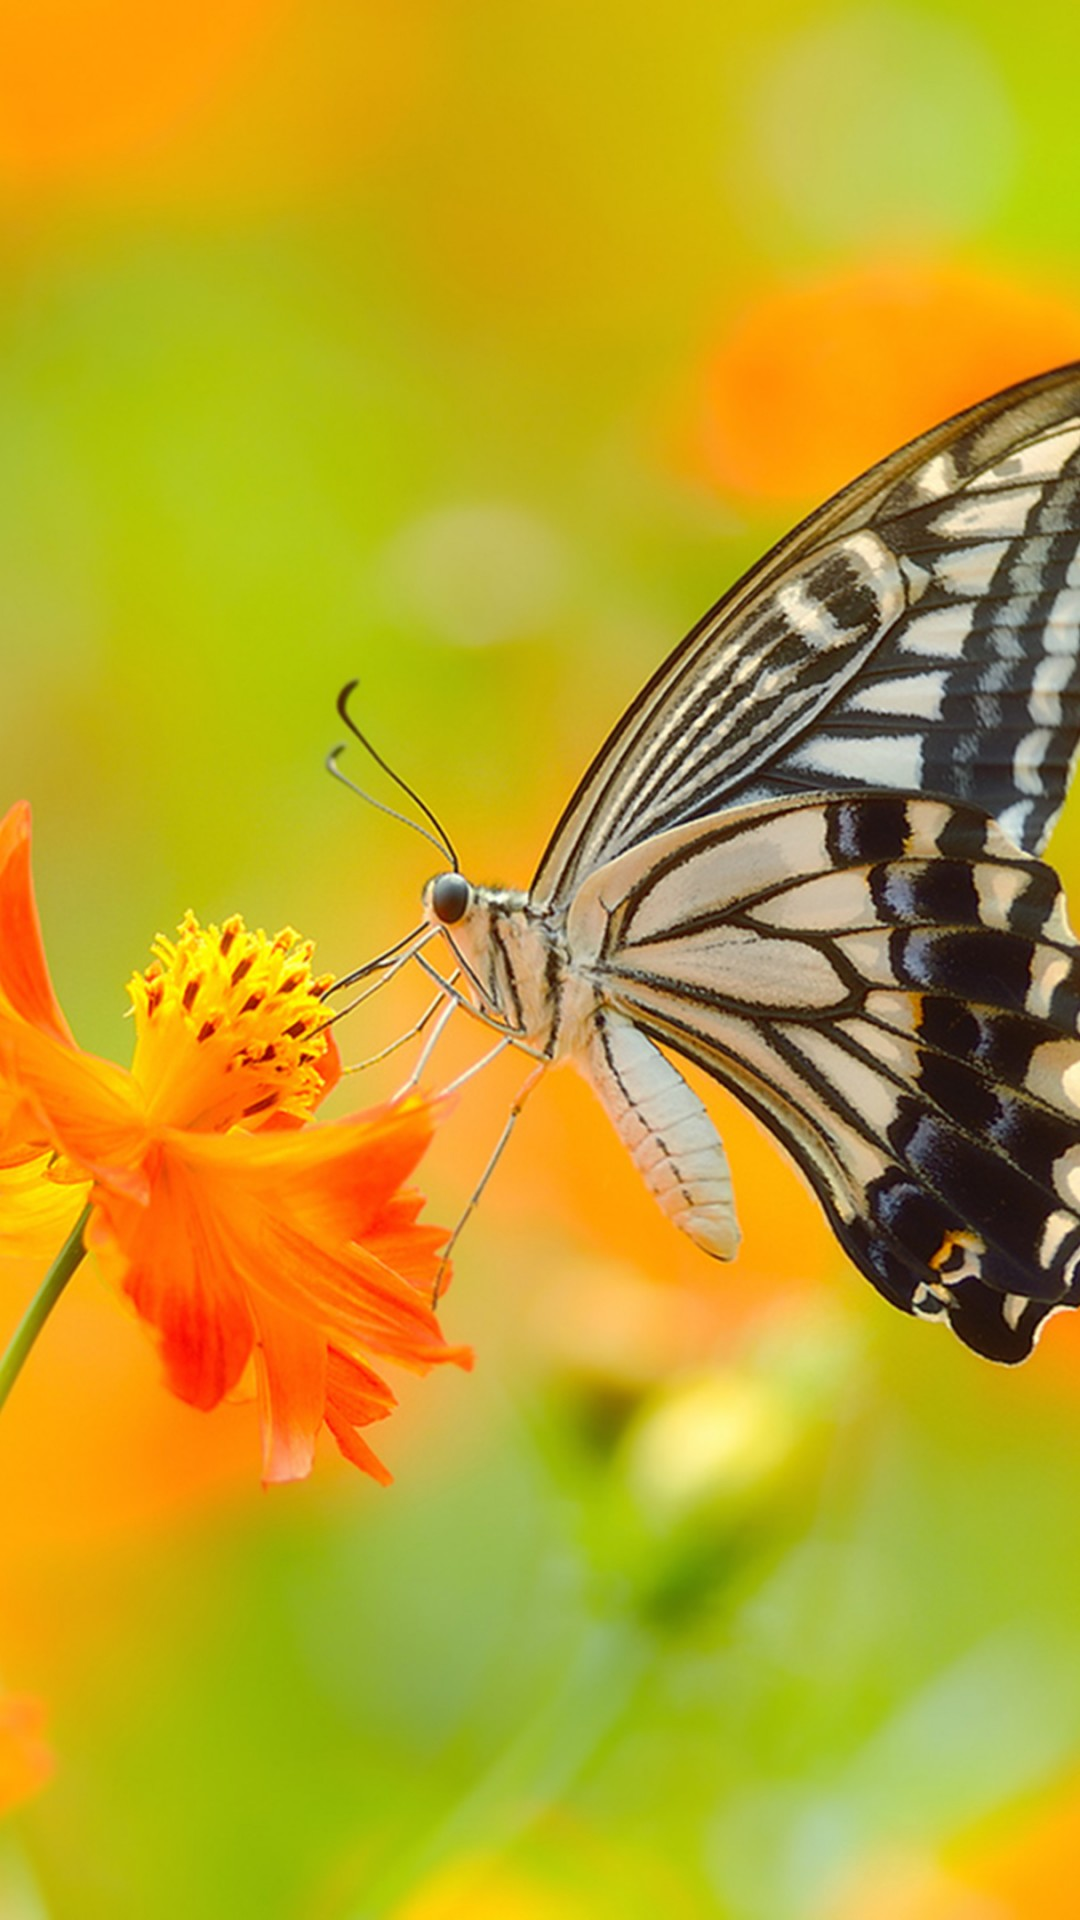 Wallpaper Butterfly 5k 4k Wallpaper Colorful Flowers Yellow Insects Animals 932